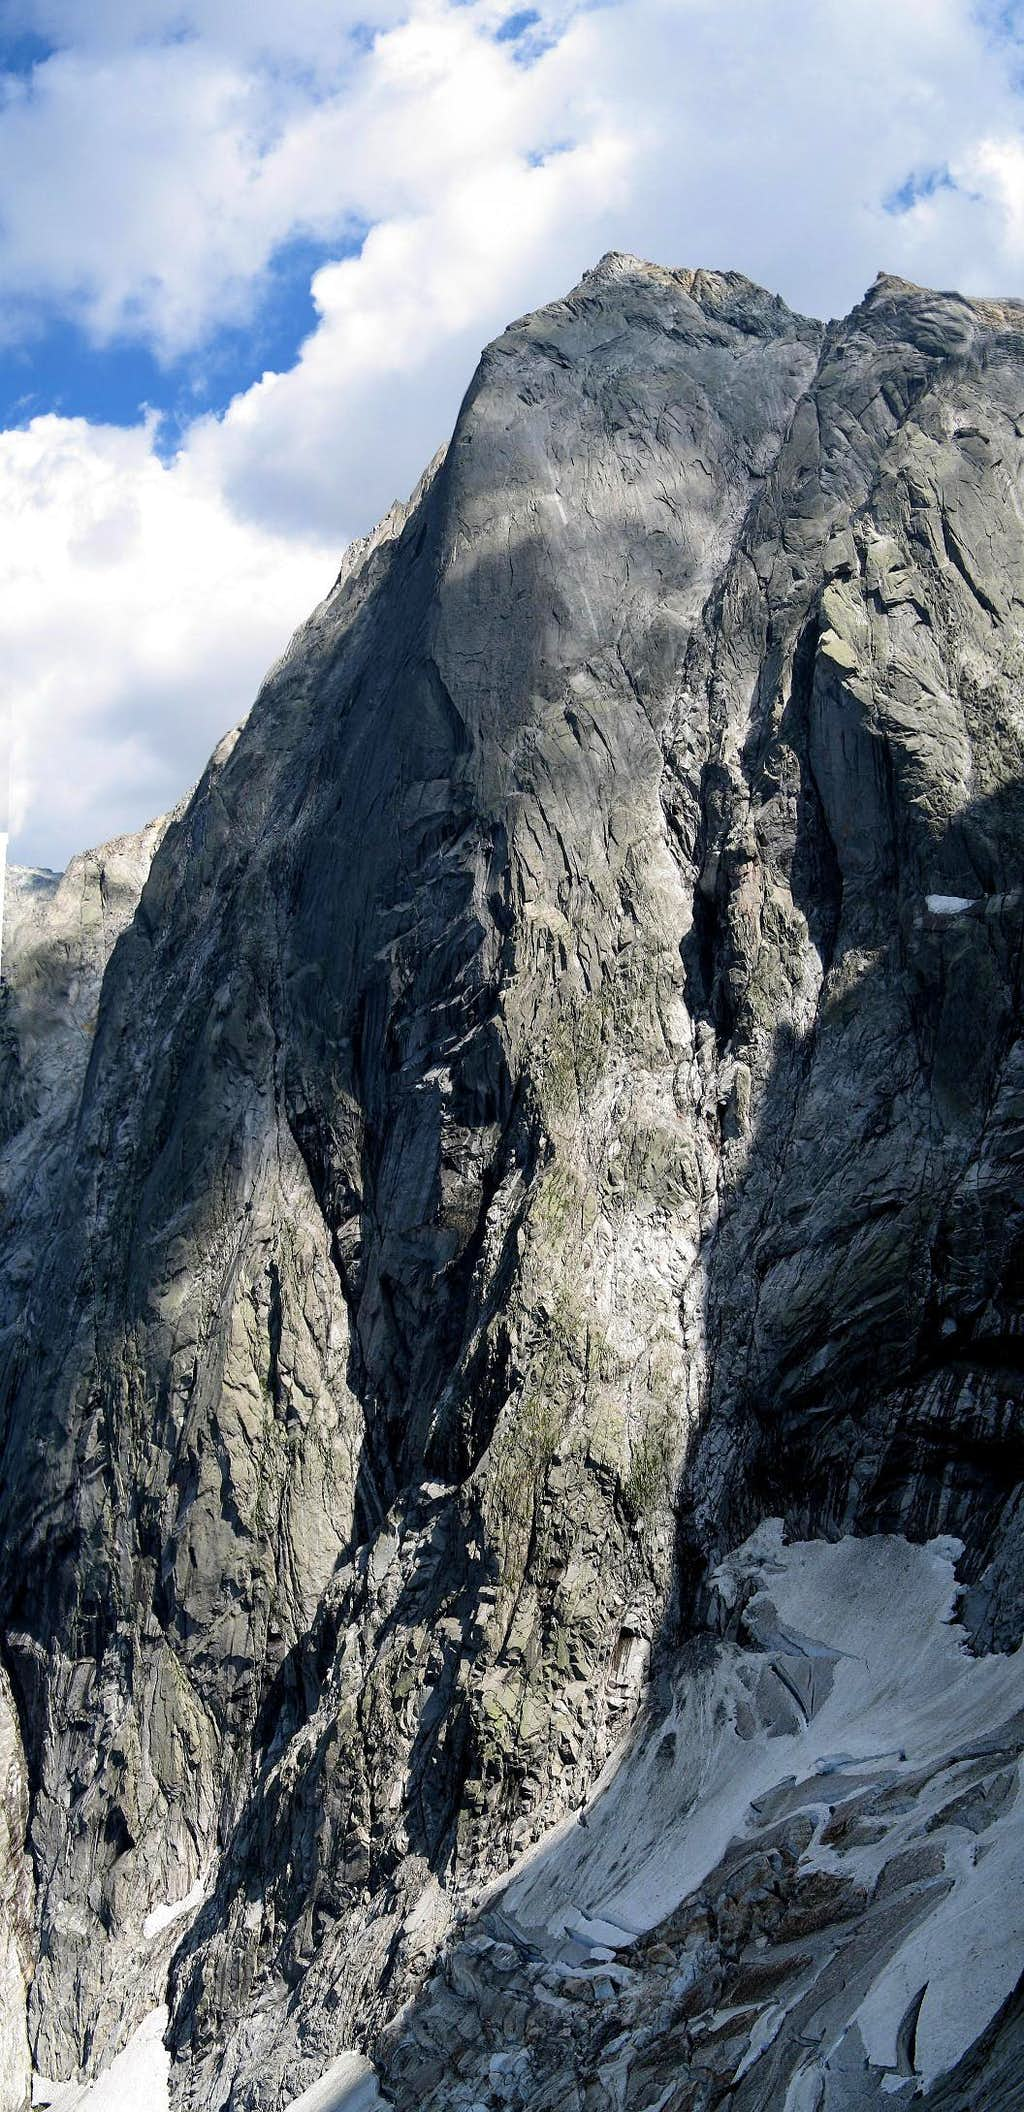 NW flank of Pizzo Cengalo